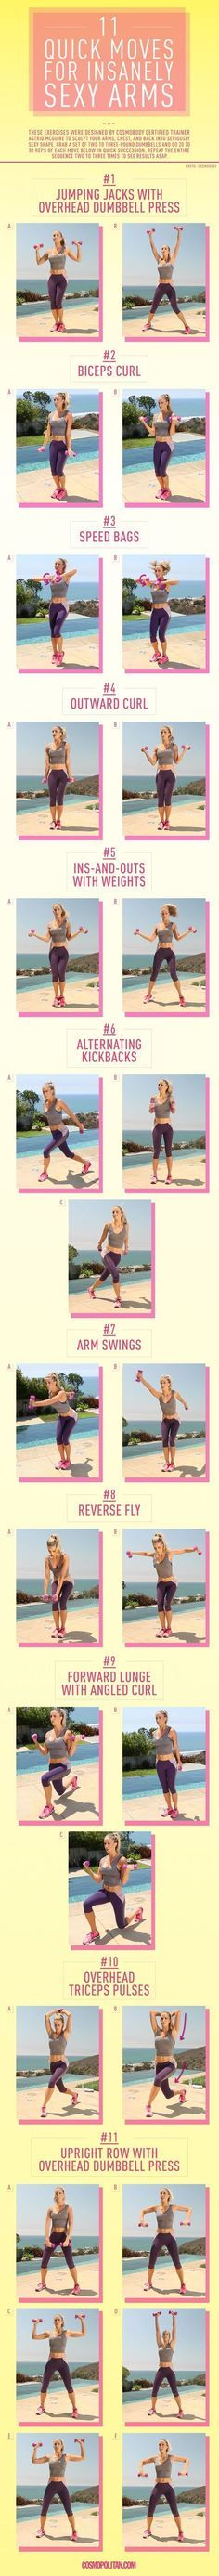 SIMPLE WORKOUT MOVES TO GET SEXY ARMS: Want to sculpt your arms and shoulders into seriously sexy shape? These exercises were designed by CosmoBody certified trainer Astrid McGuire to do just that. Grab a set of 2- to 3-pound dumbbells, and do 20 to 30 reps of each move below in quick succession. Repeat the entire sequence two to three times to see results ASAP, and get a bonus burn in your back, chest, and legs. Click through for the full workout info and for instructional gifs that show…